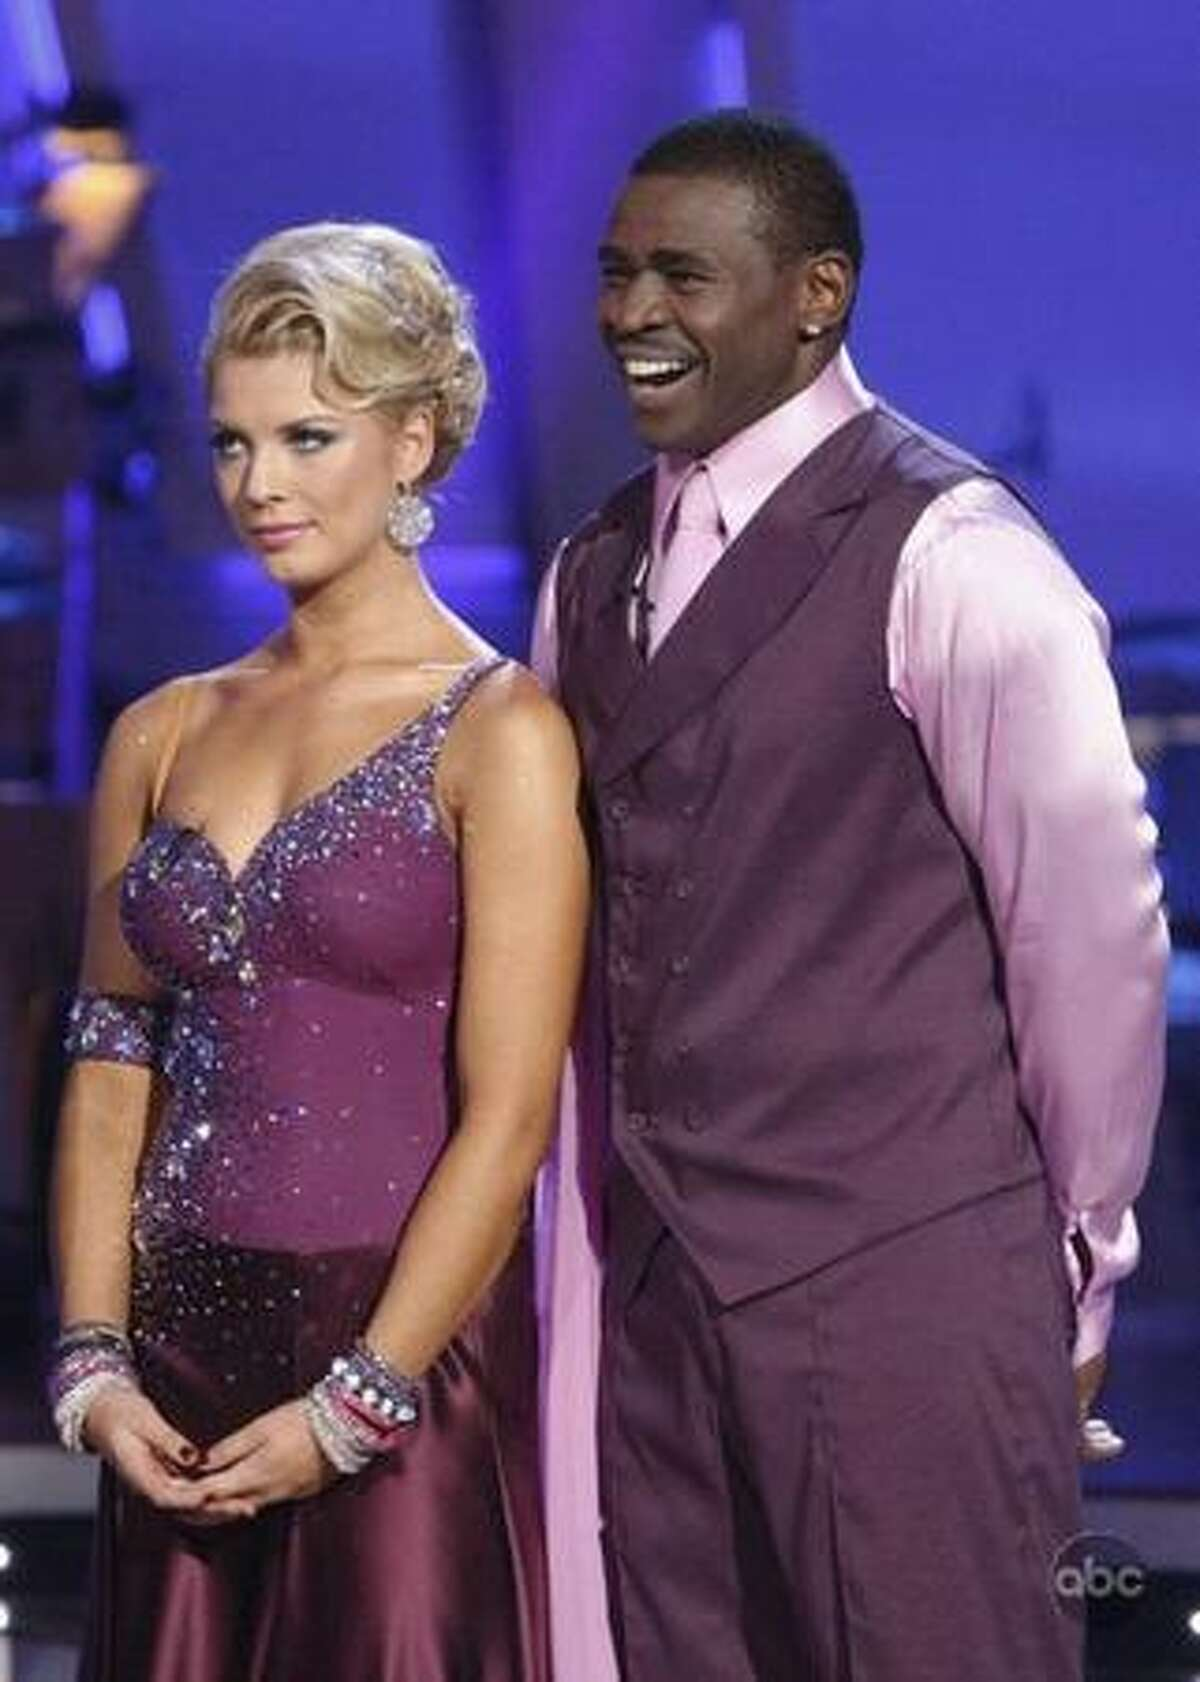 Professional dancer Anna Demidova and former pro football player Michael Irvin.